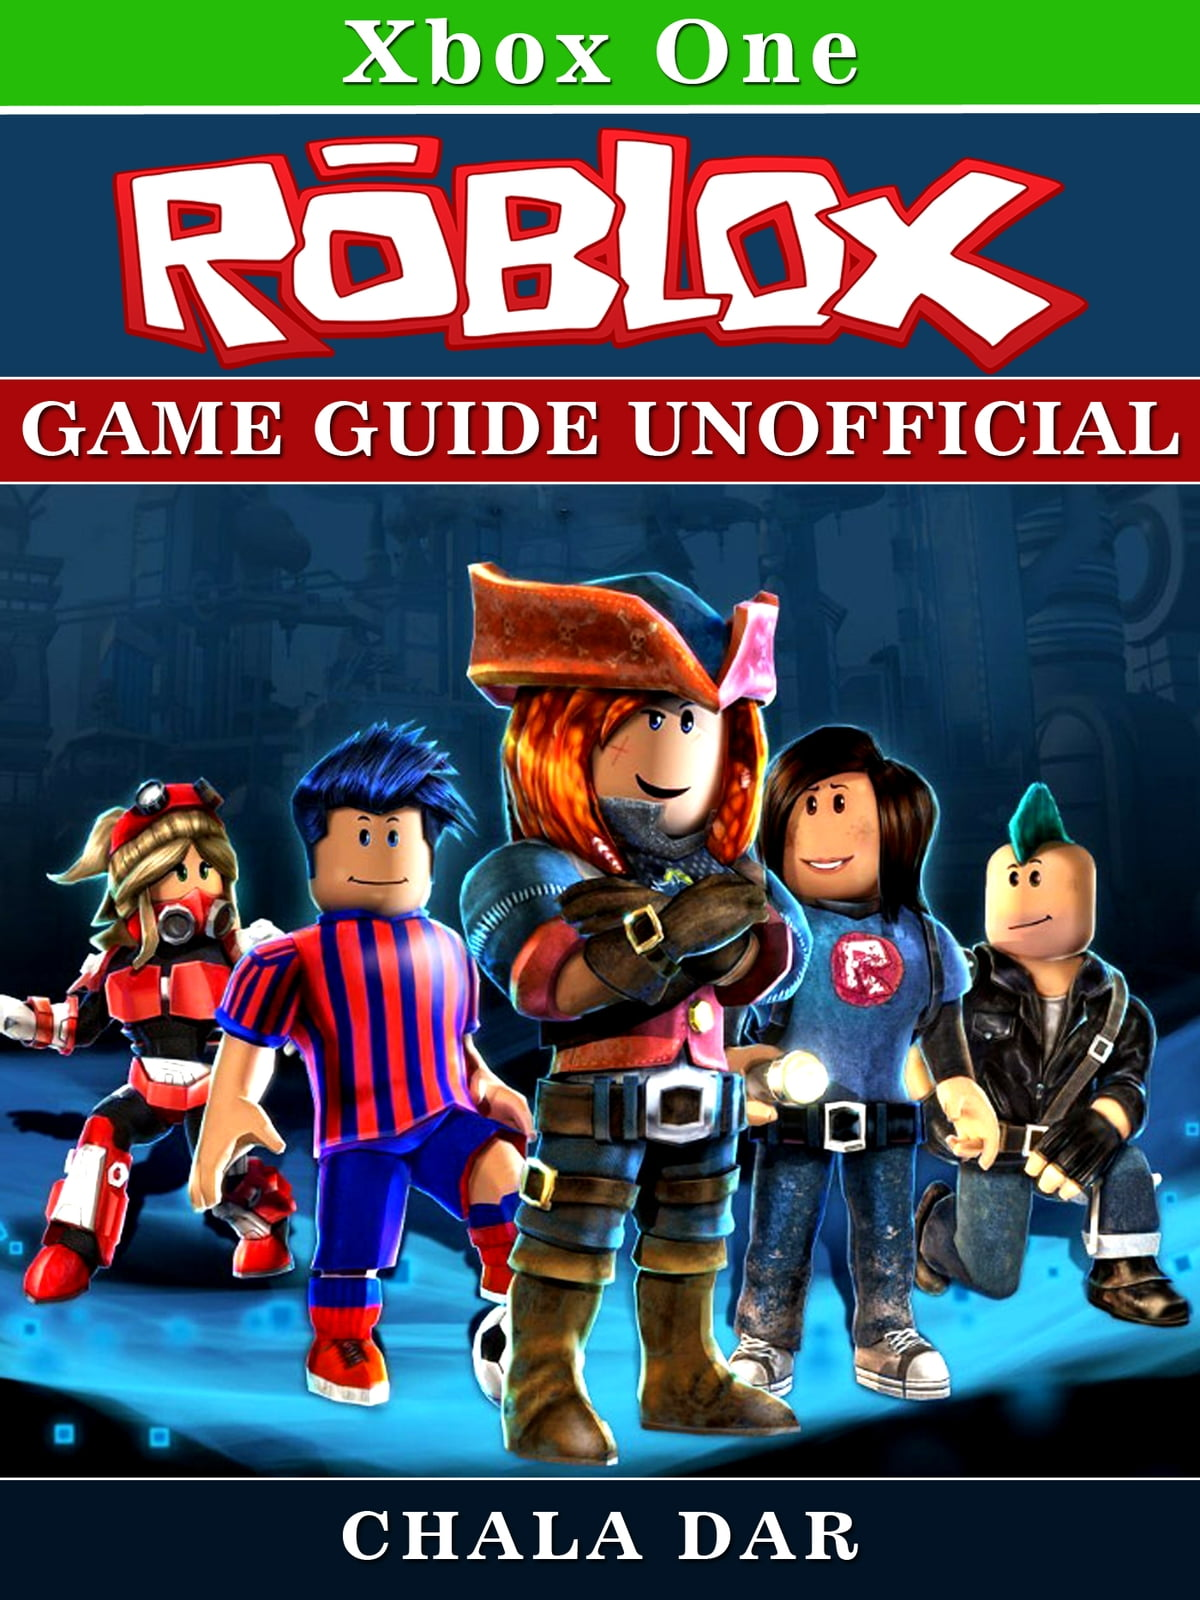 Roblox Xbox One Game Guide Unofficial Ebook By Chala Dar Rakuten Kobo - roblox game card for nintendo switch